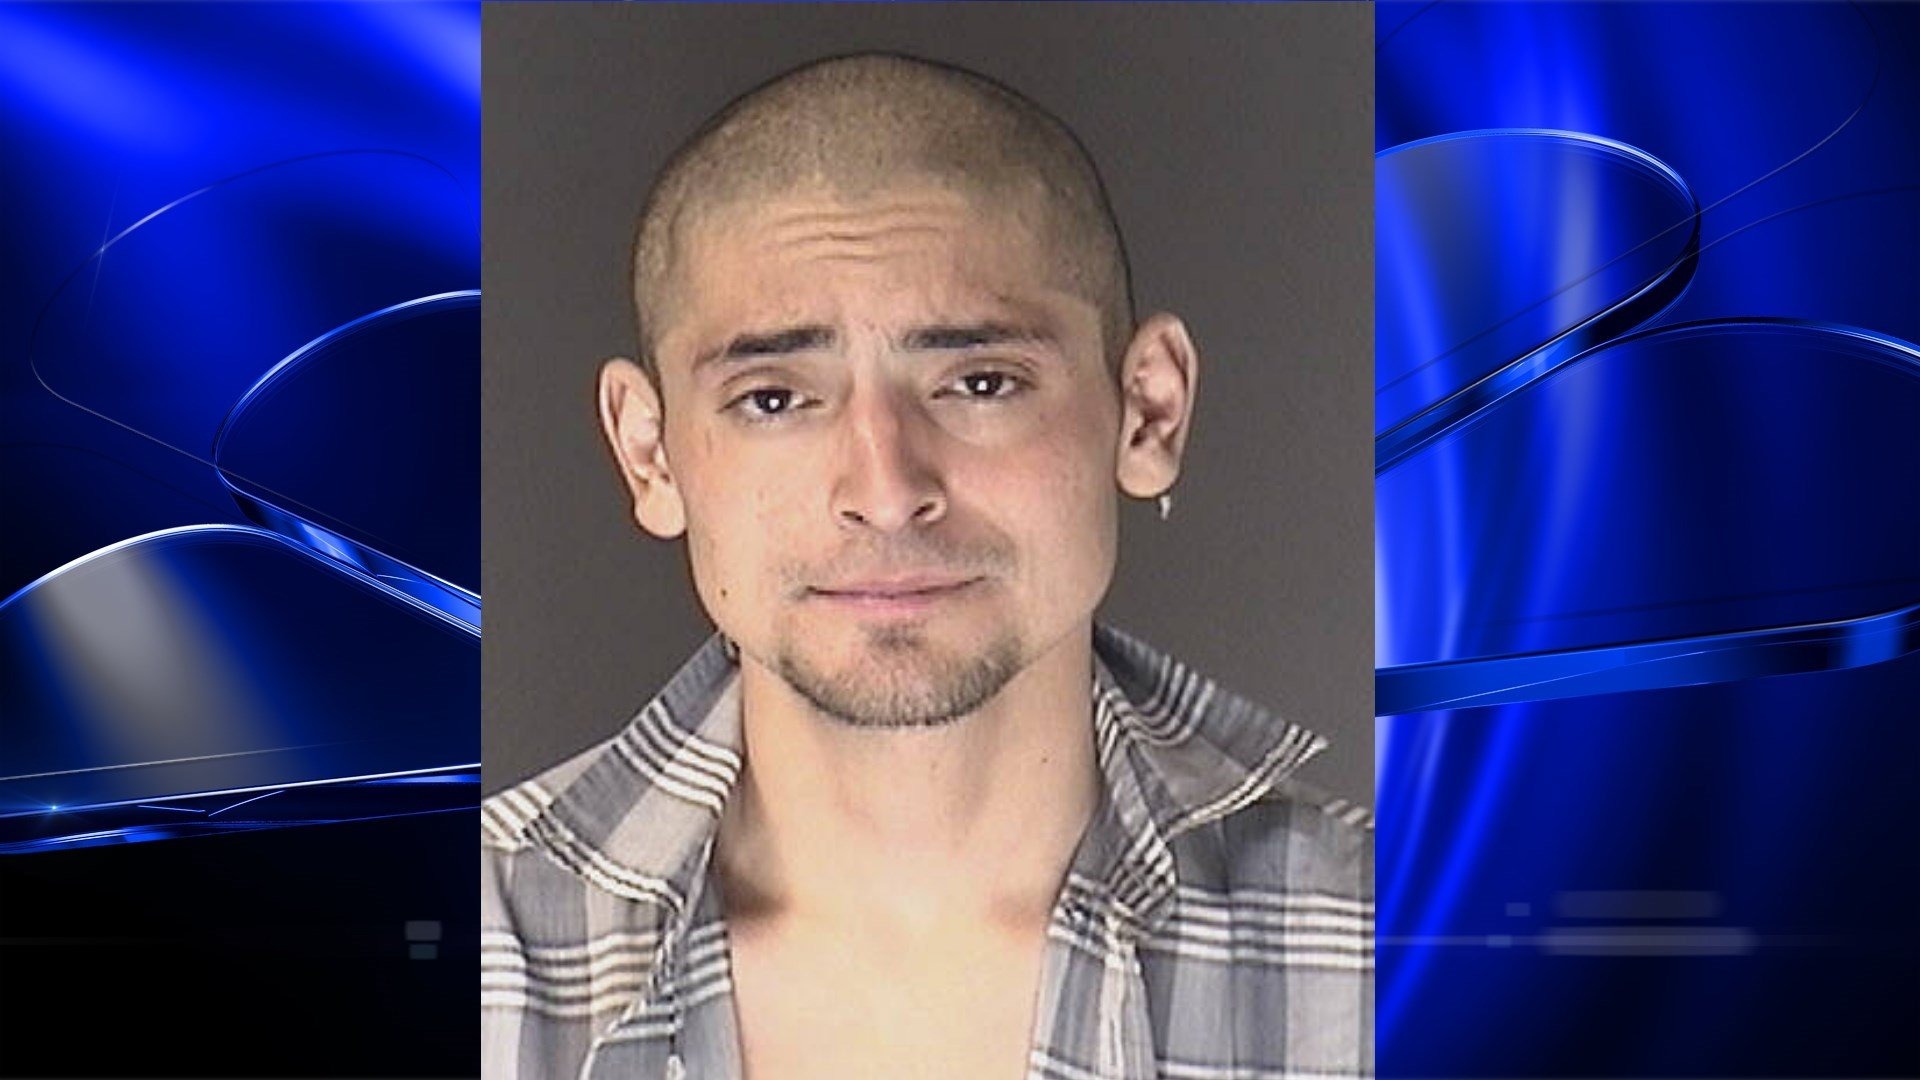 Carlos Daniel Meza, also known as 'Tink', wanted for weapons charges.